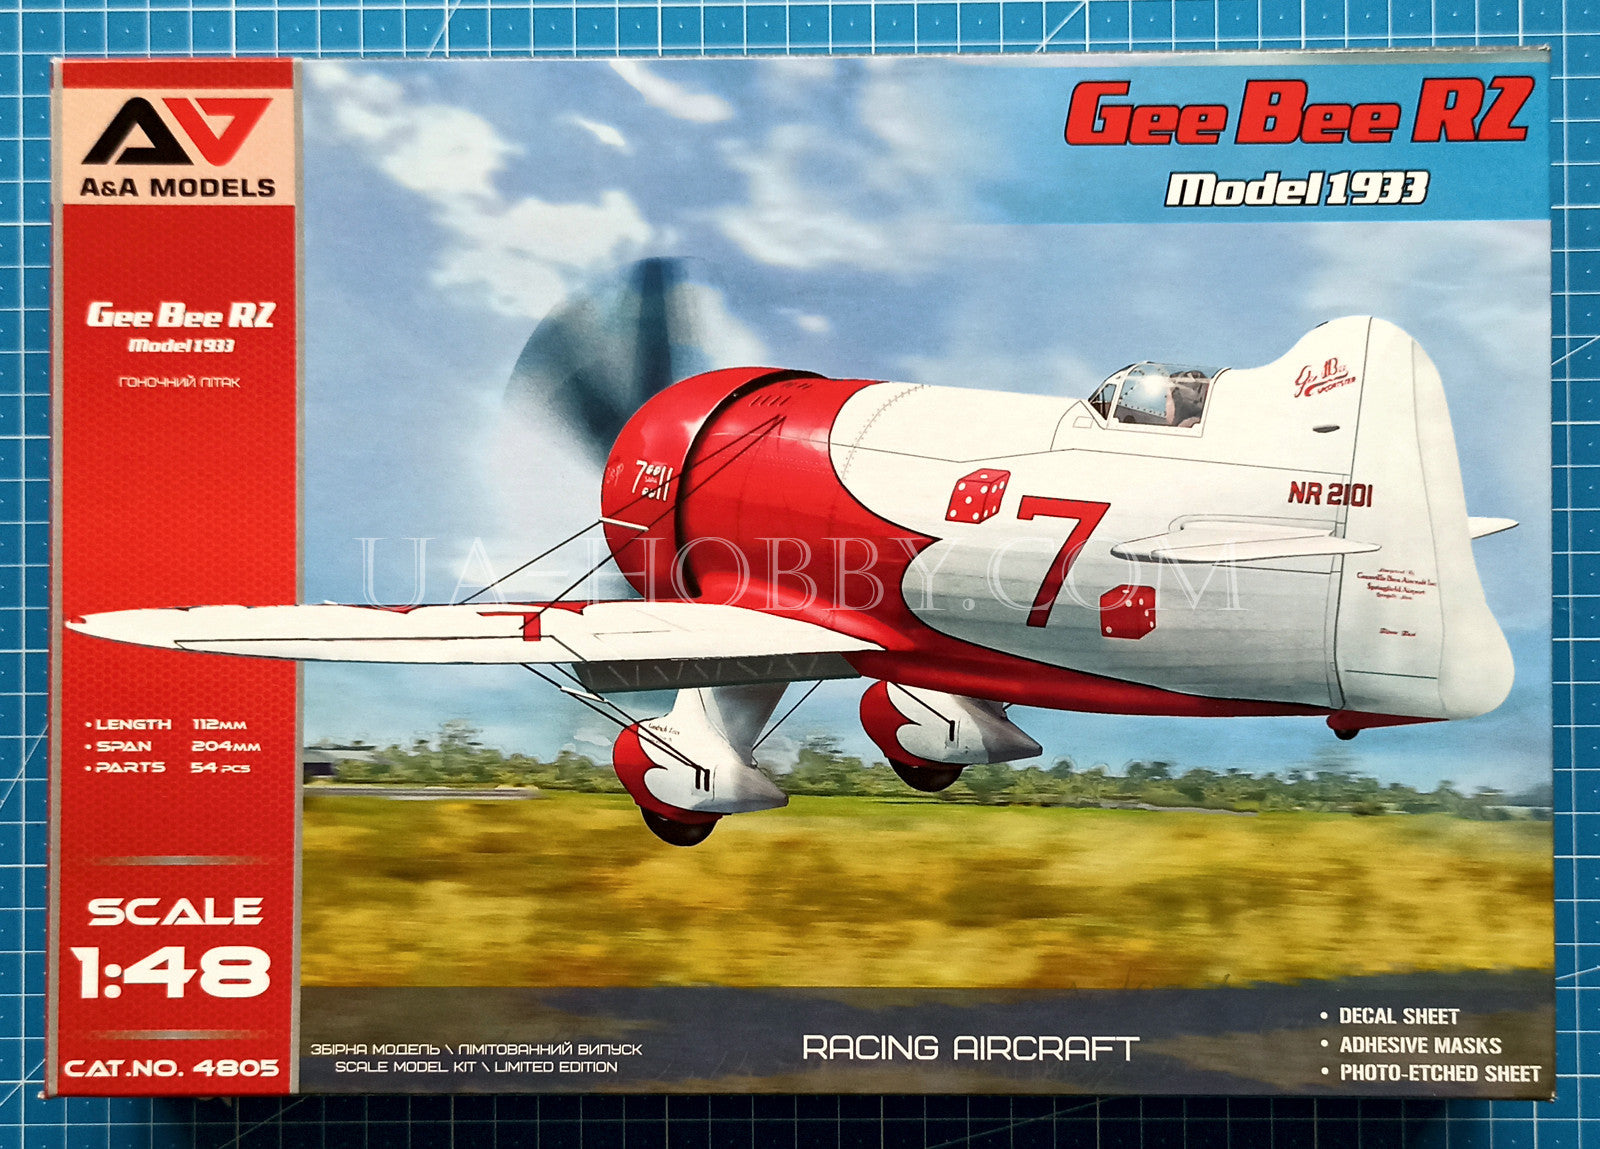 1/48 Gee Bee R2 Model 1933. A&A Models 4805